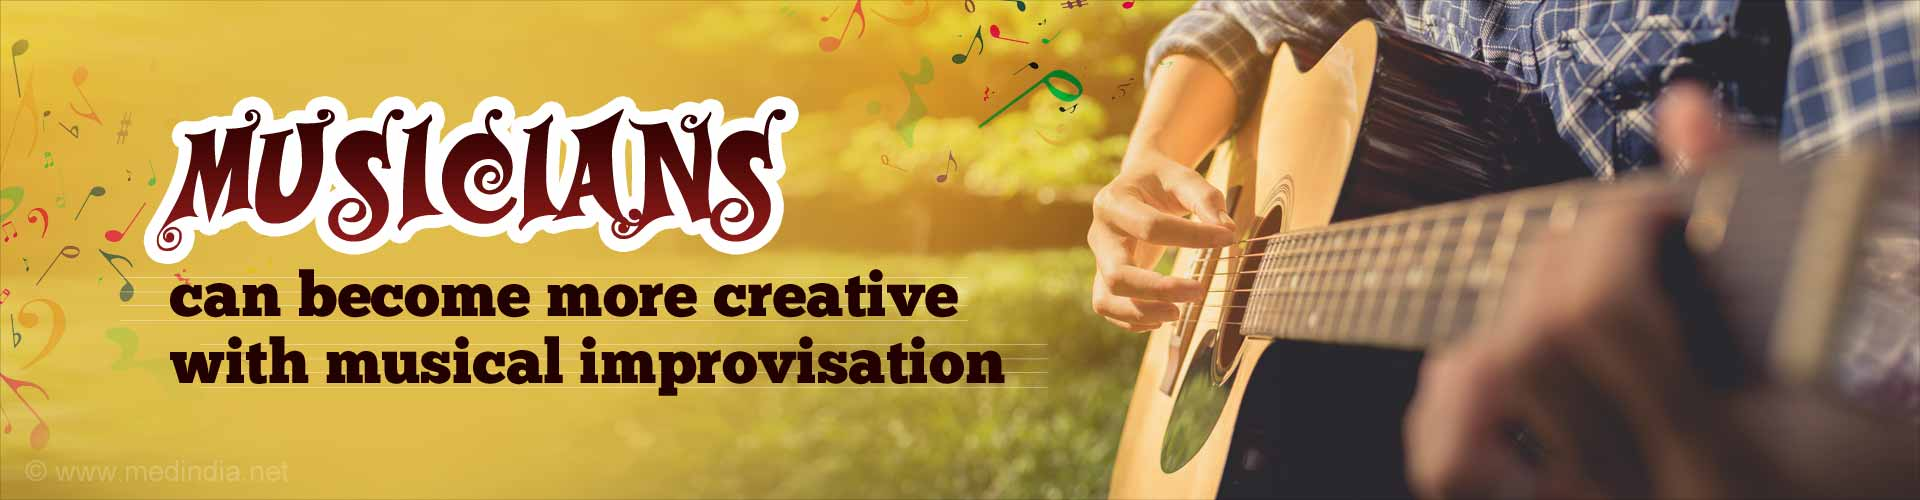 Musicians can become more creative with musical improvisation.